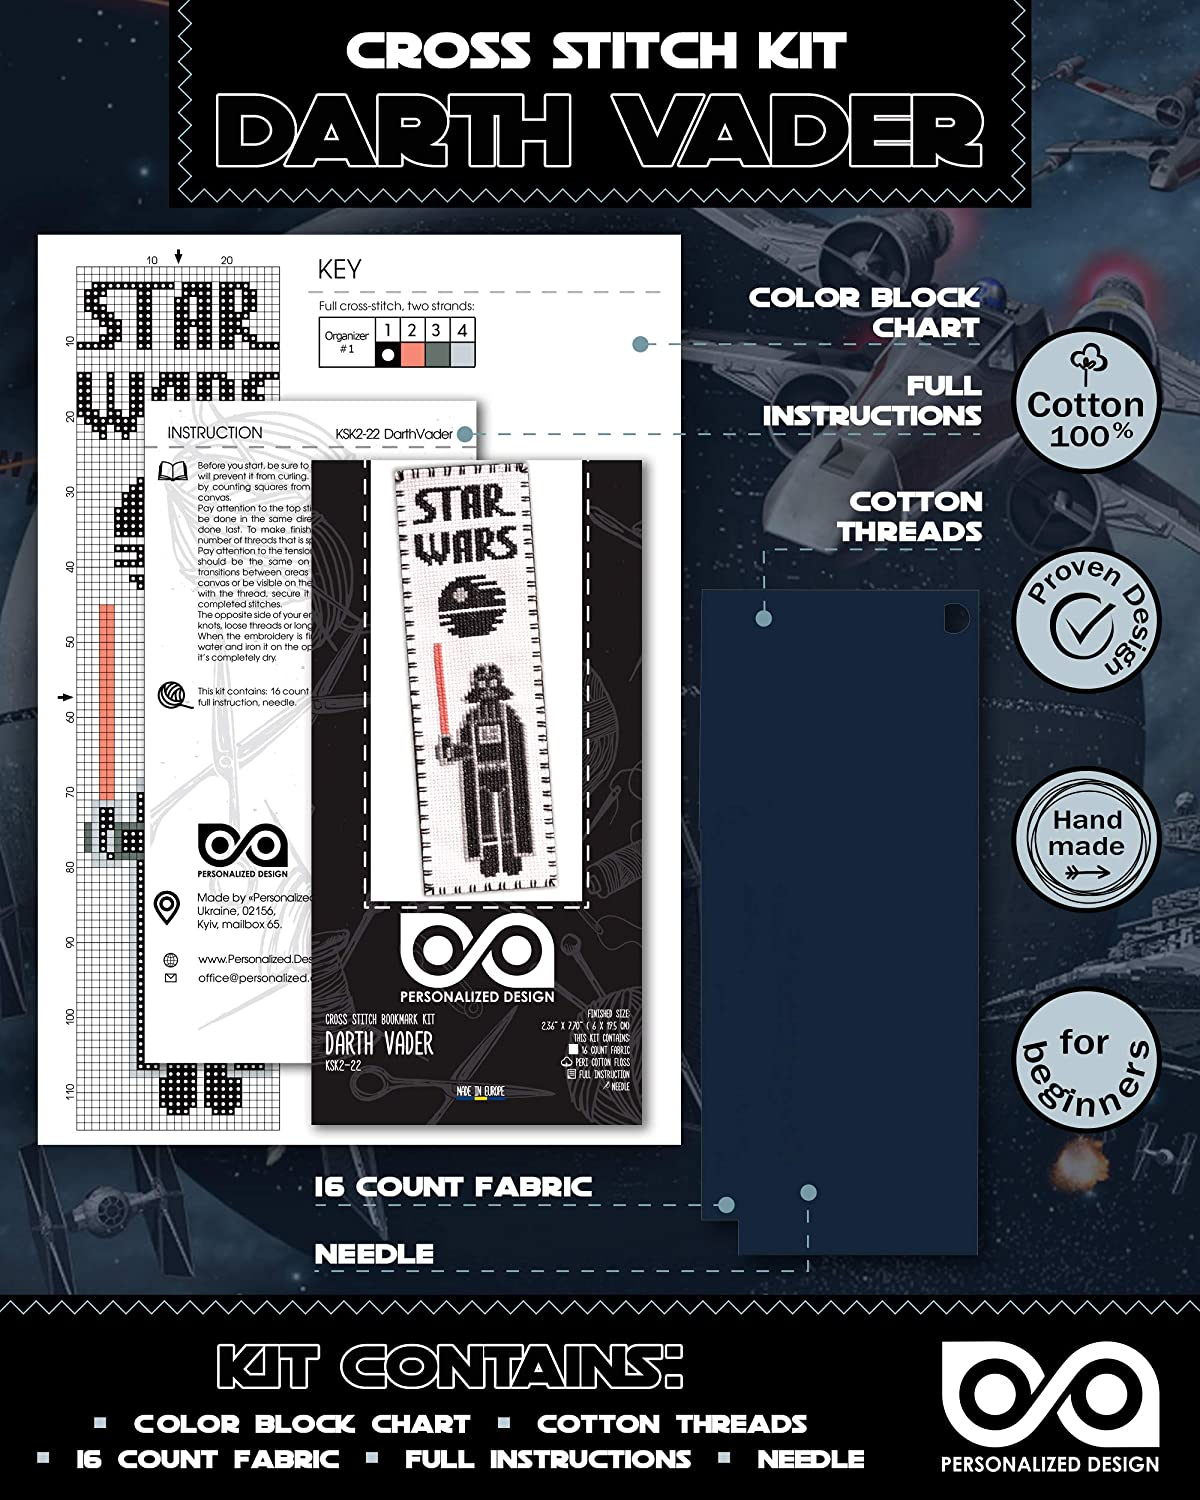 DIY Christmas Gift Hand Embroidery Bookmarks with Patterns Cross Stitch Kits Star Wars Set 7-in-1